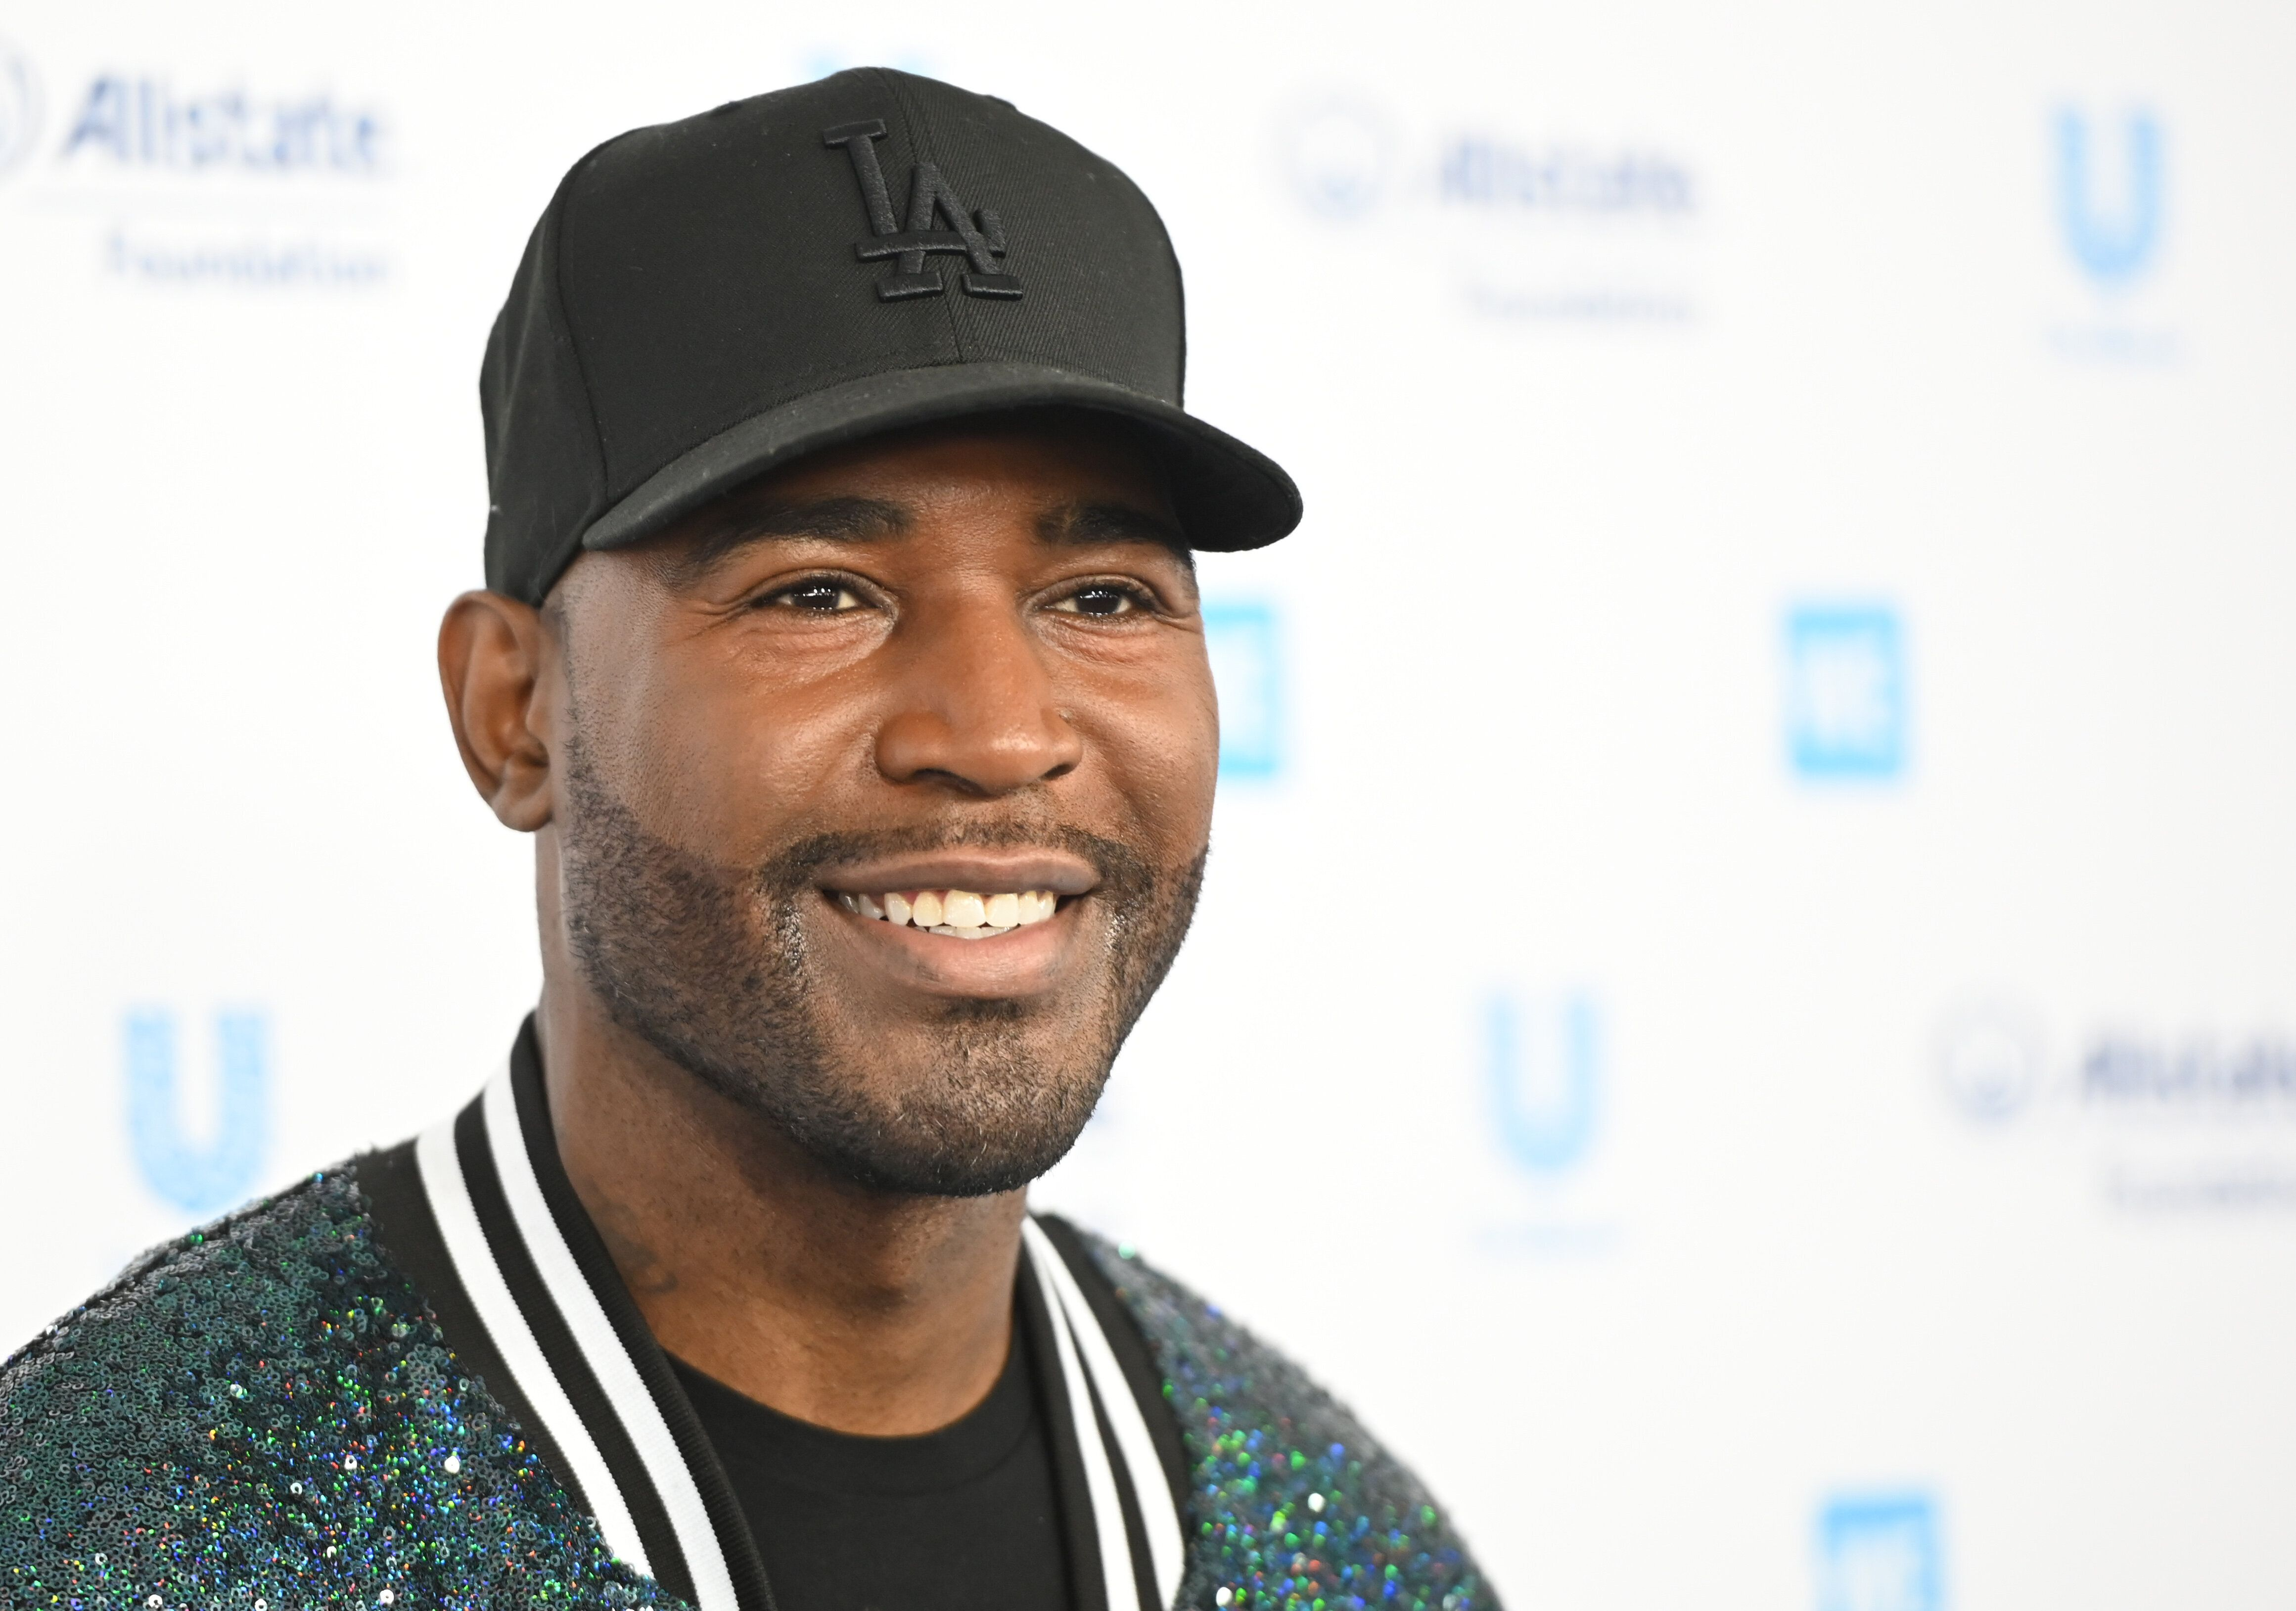 Karamo Brown Wondered If A Common Phrase Was Offensive, So He Asked